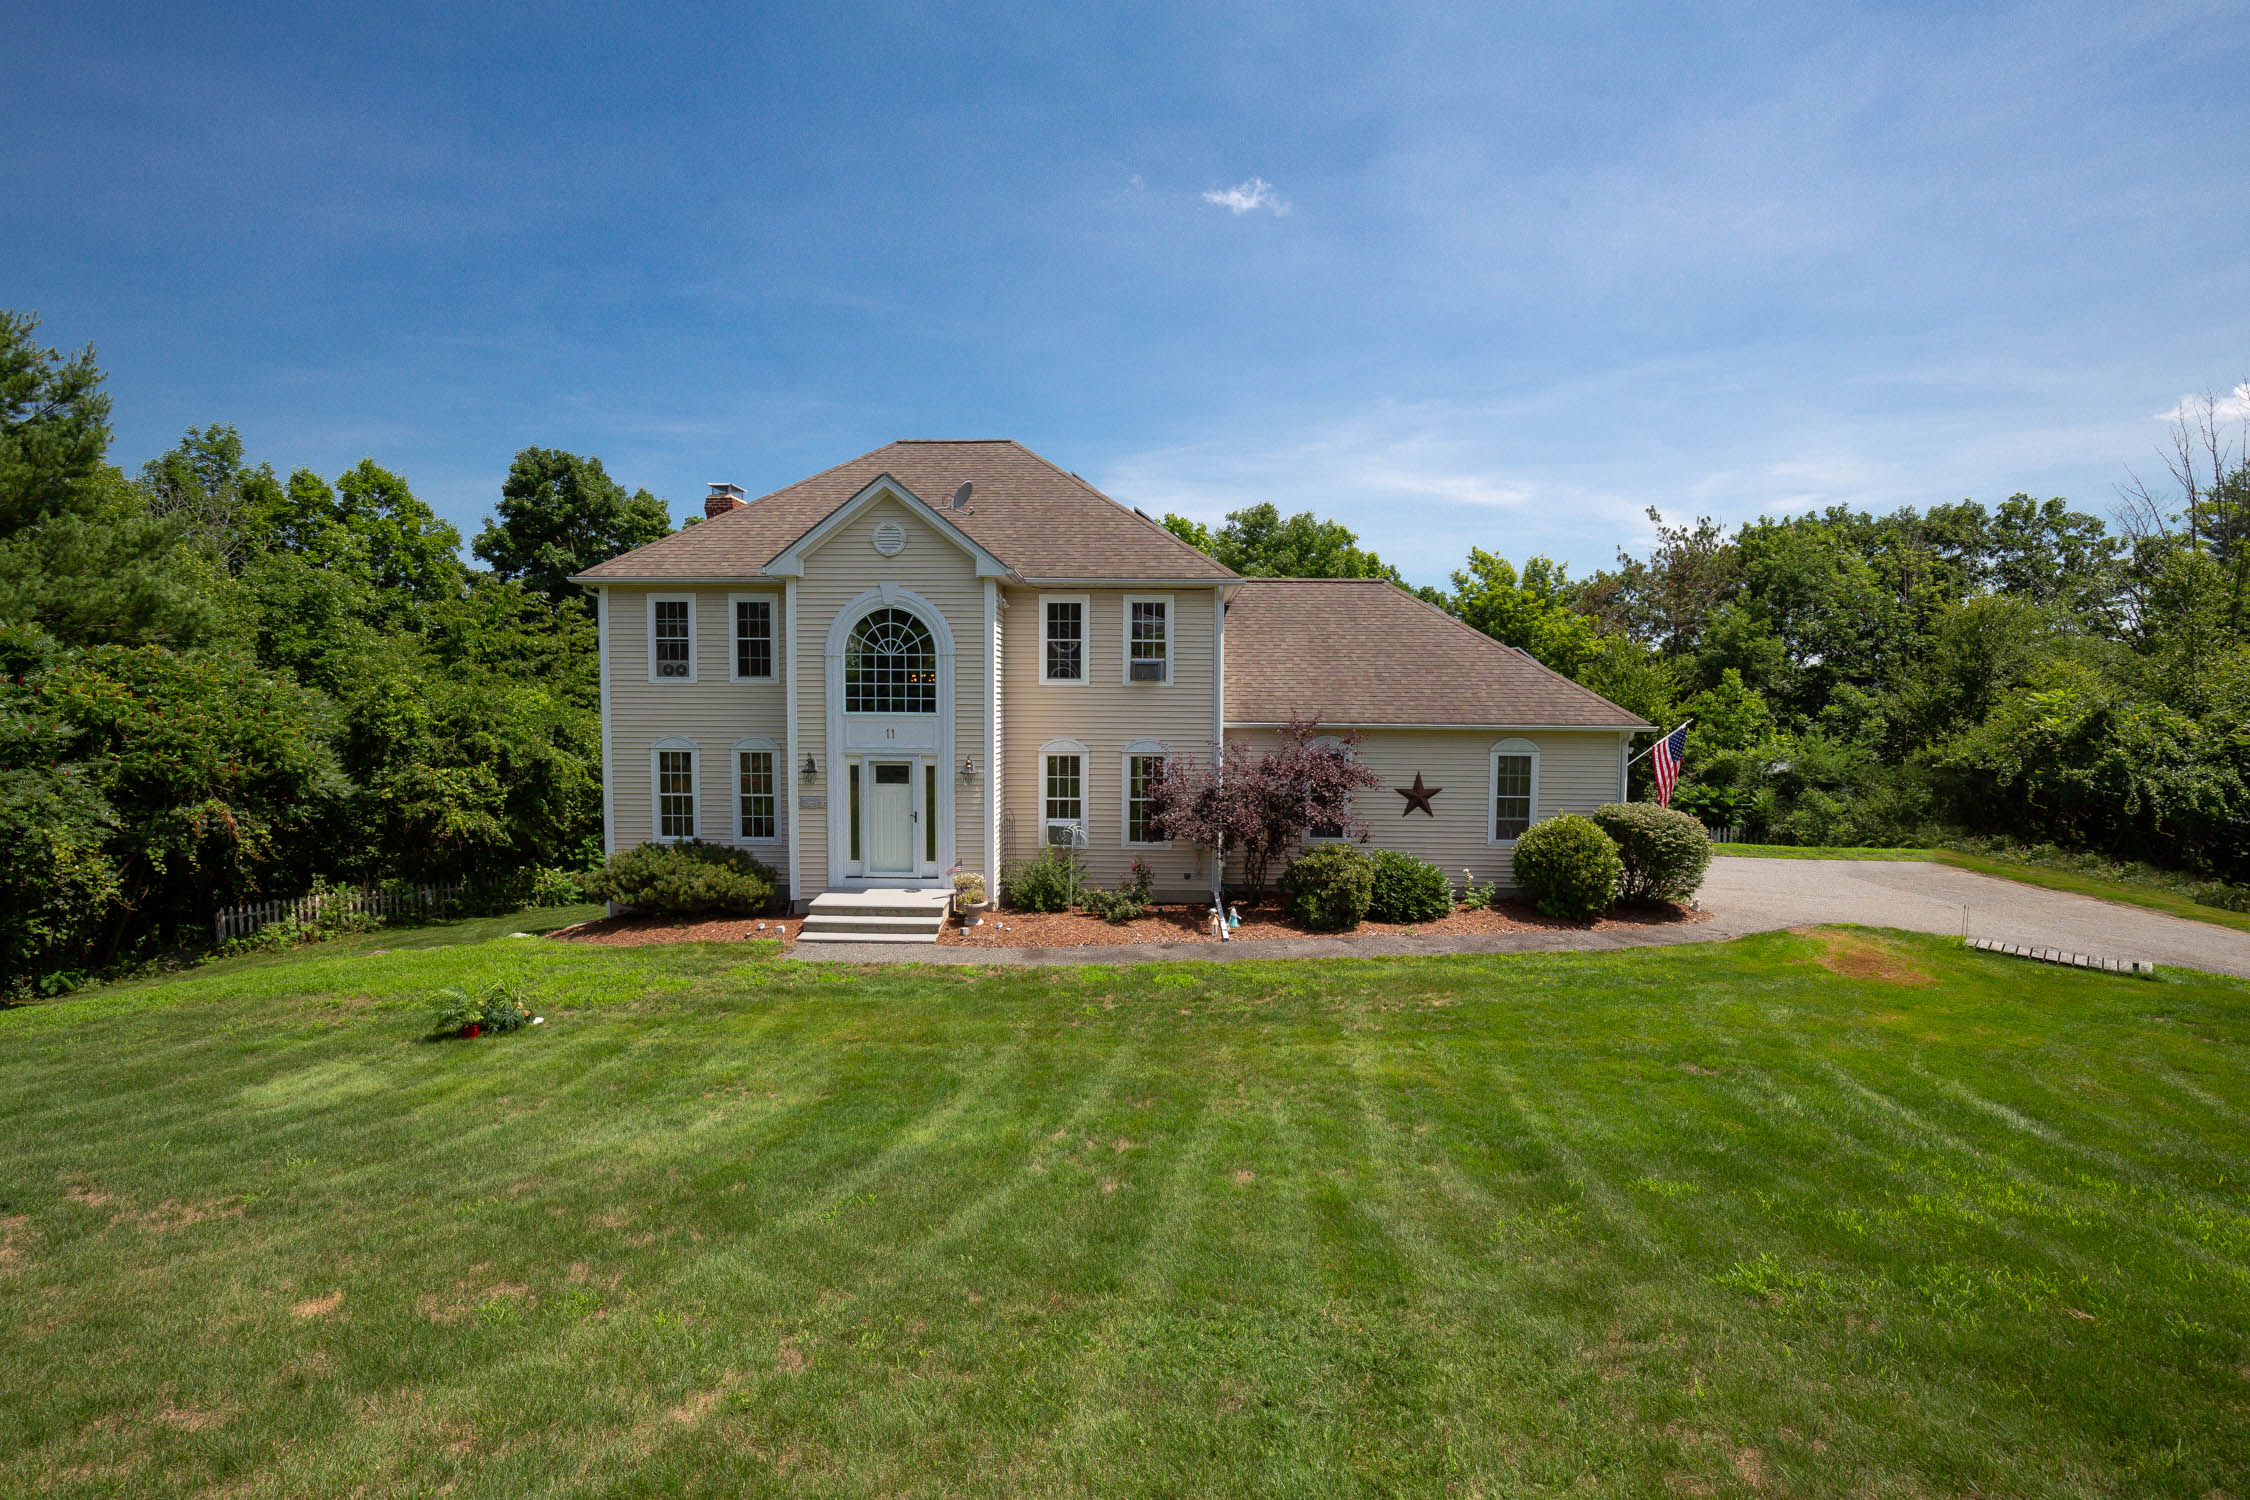 Do not delay in seeing this spacious colonial in a neighborhood setting in the quaint town of Rutland. This home features a grand foyer entrance that leads to the open layout of the first floor. The updated kitchen with keyhole island is fantastic for entertaining or just cozy up on the couch in fireplaced living room that spans front to back. First floor also offers ample closet space, a half bath and first floor laundry! Head upstairs where you will find a large master bedroom with an enormous walk in closet and a full bath. The second floor features 3 additional generous sized bedrooms and a full bath. The lower level is partially finished with room for guests, an office space or even a 5th bedroom. The unfinished basement area walks out to the private fenced in backyard. This home, like many others in the neighborhood, features cost saving solar electric. The small attention to details really makes this a home to remember.